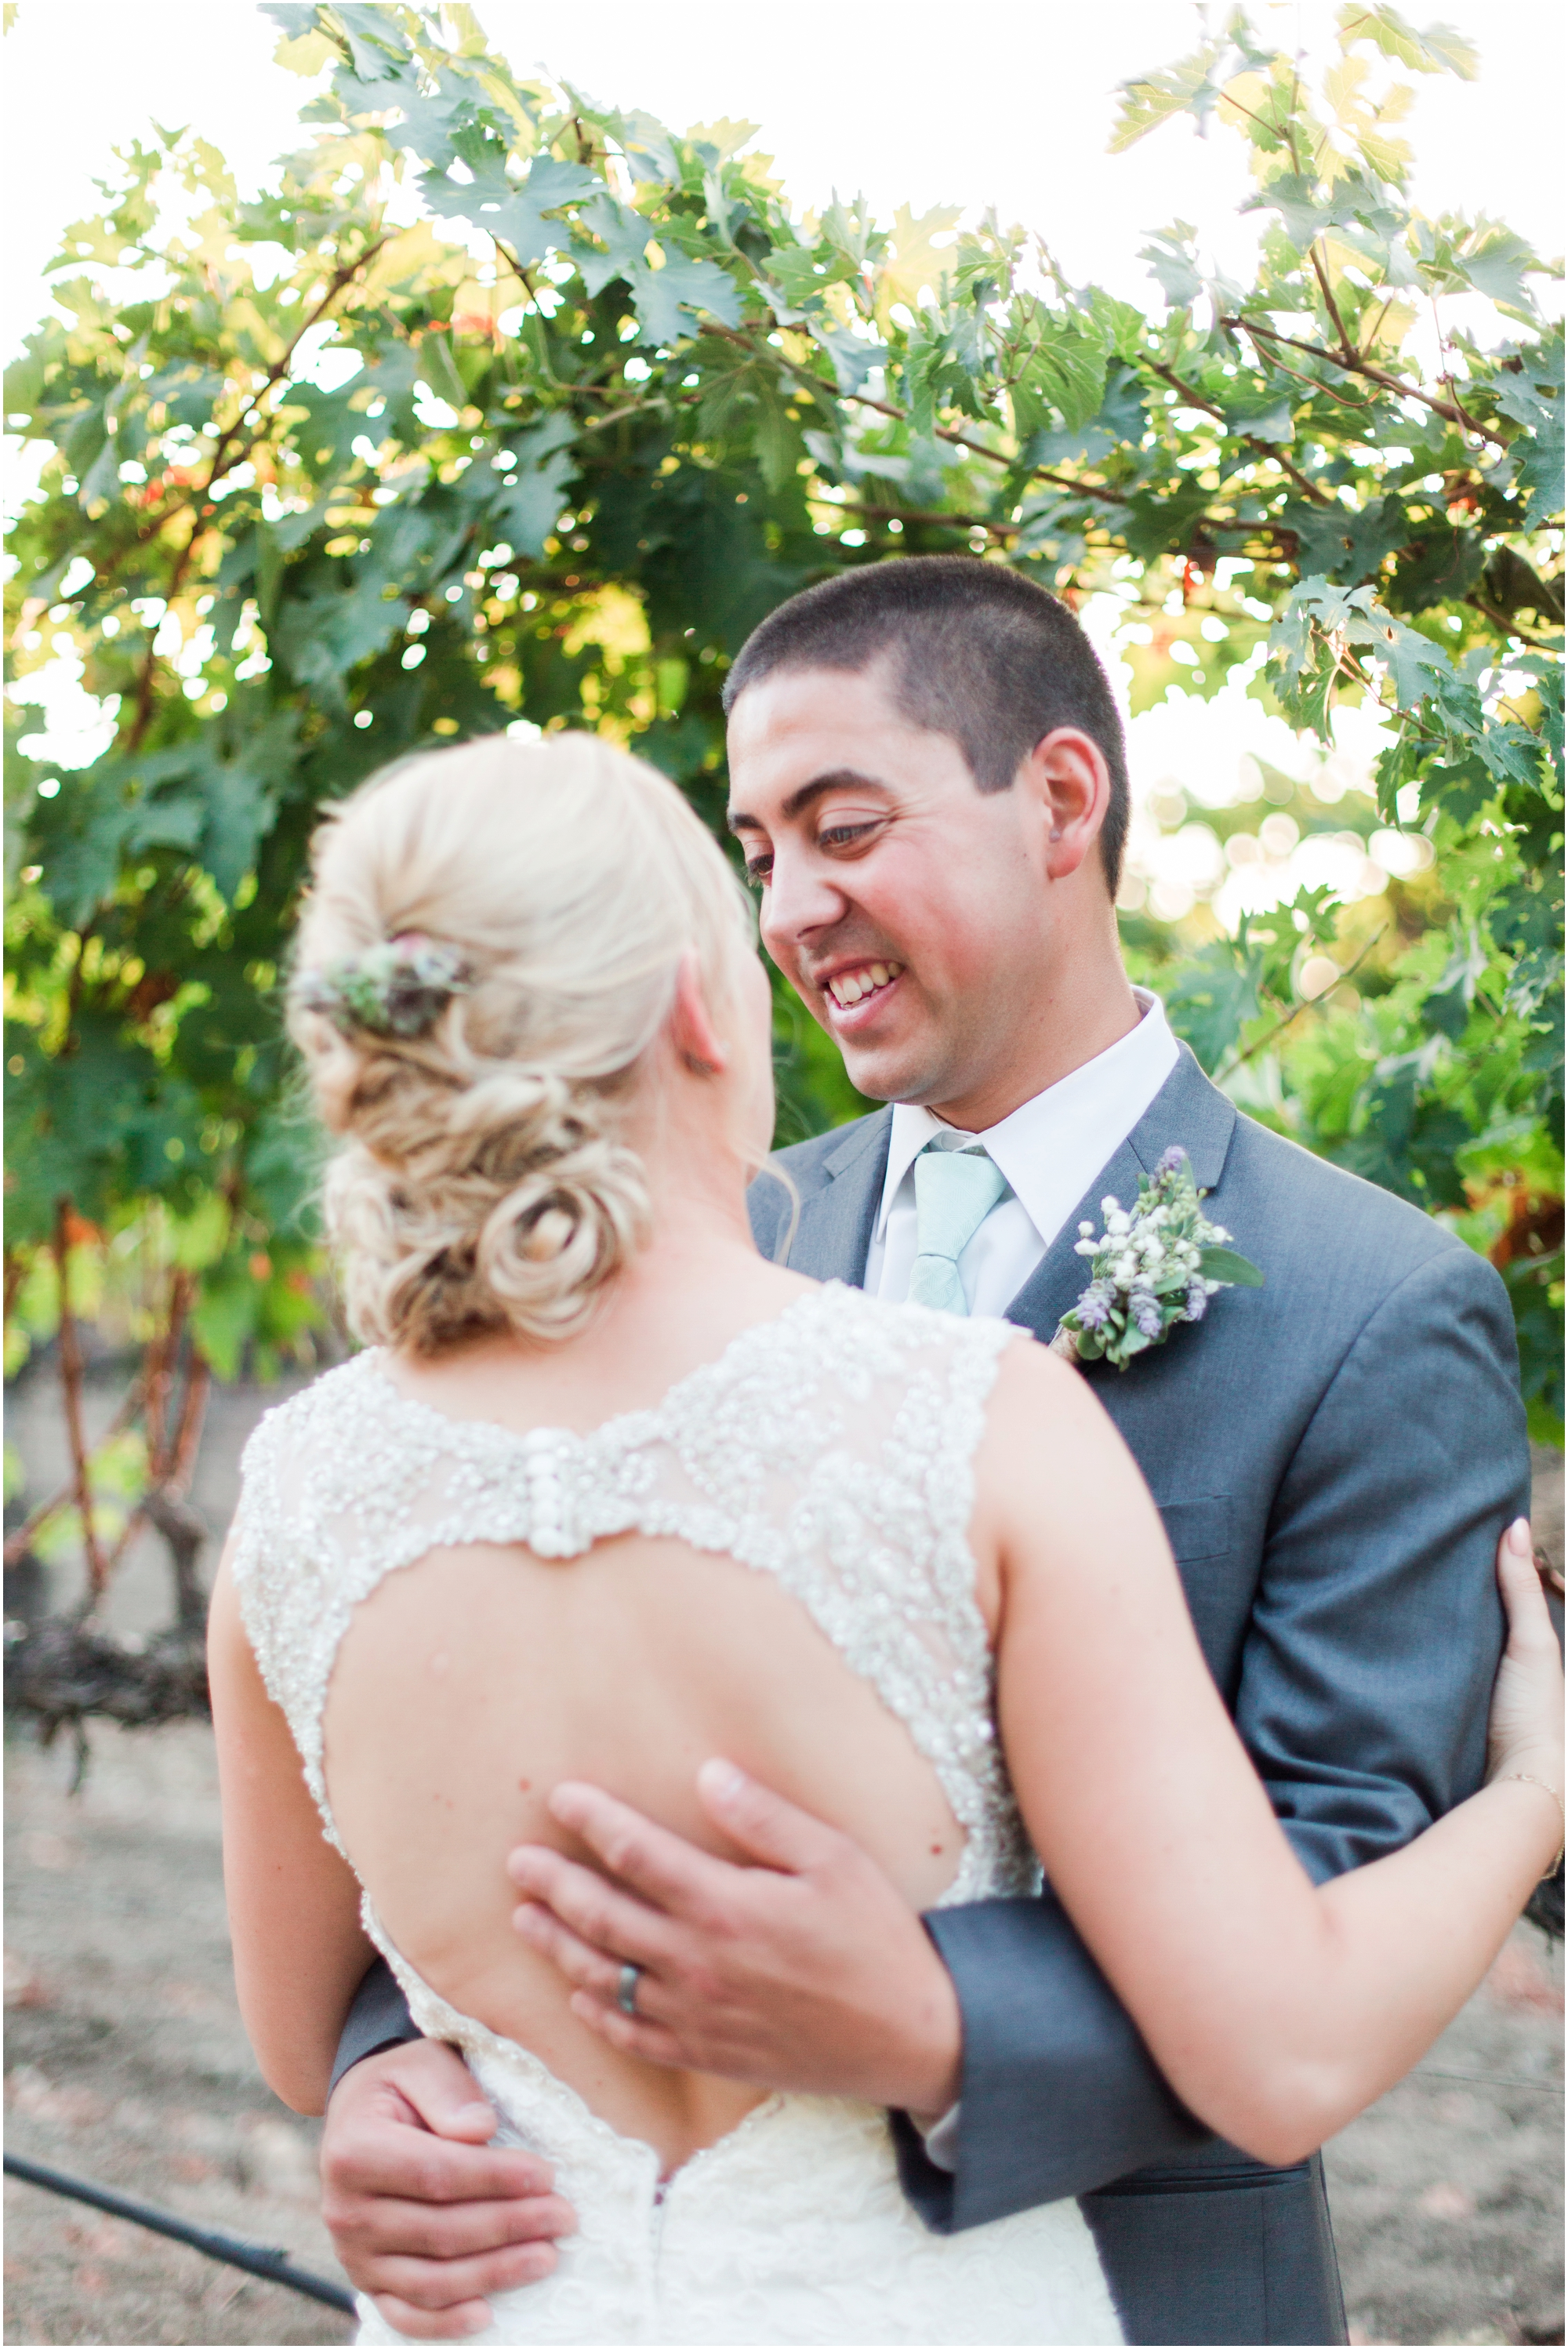 Retzlaff Winery wedding pictures by Briana Calderon Photography_2331.jpg